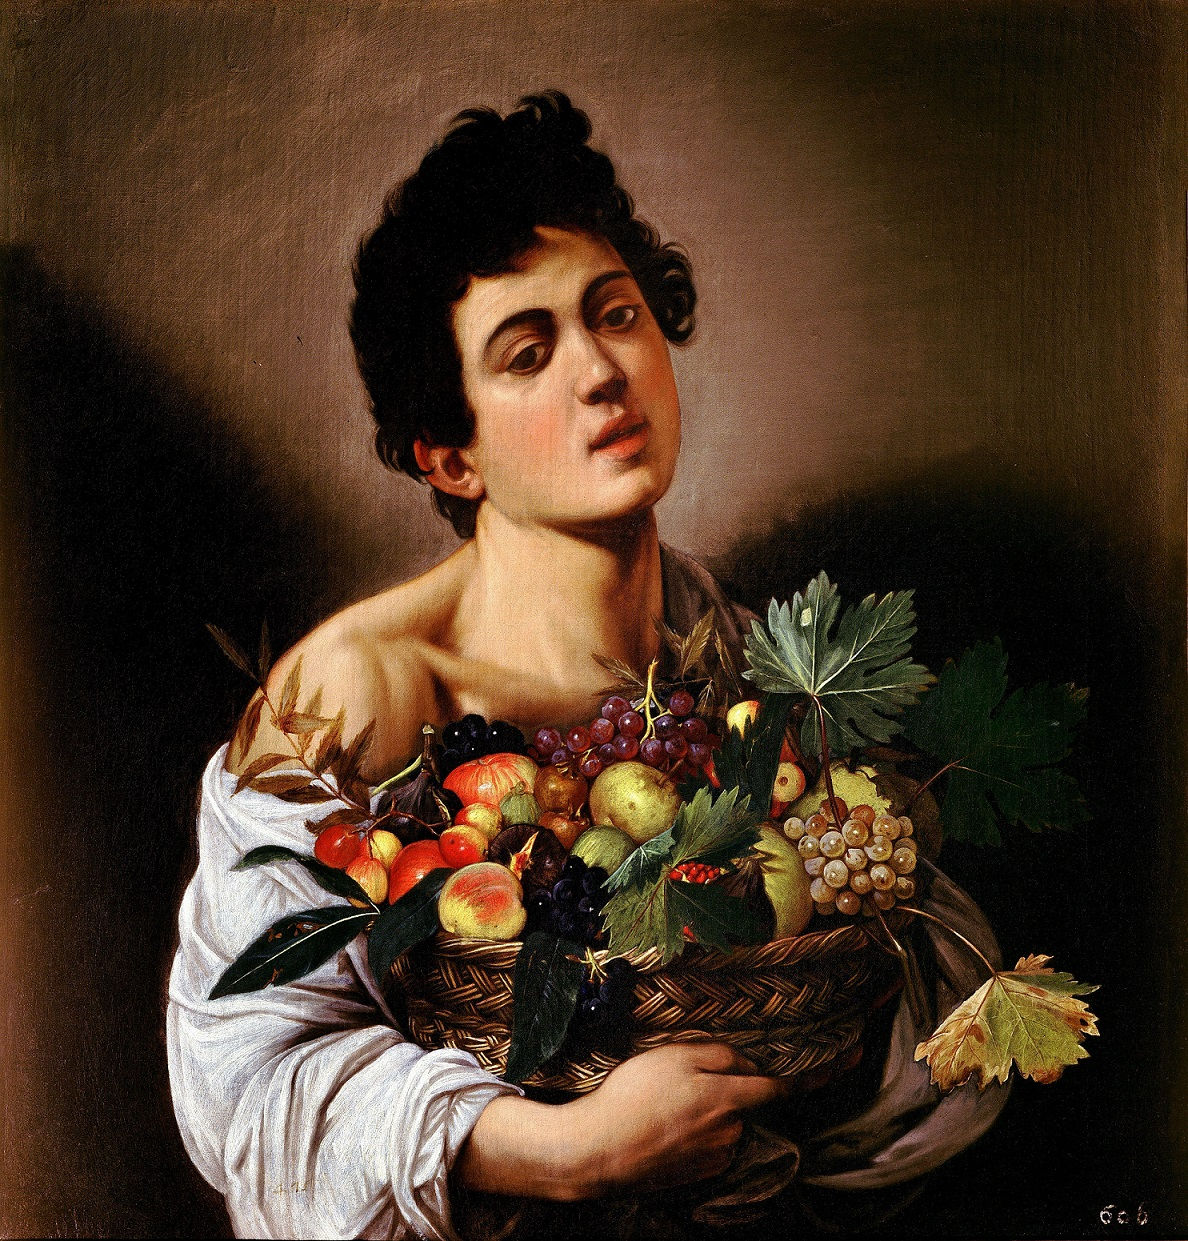 Boy_with_a_Basket_of_Fruit-Caravaggio_1593